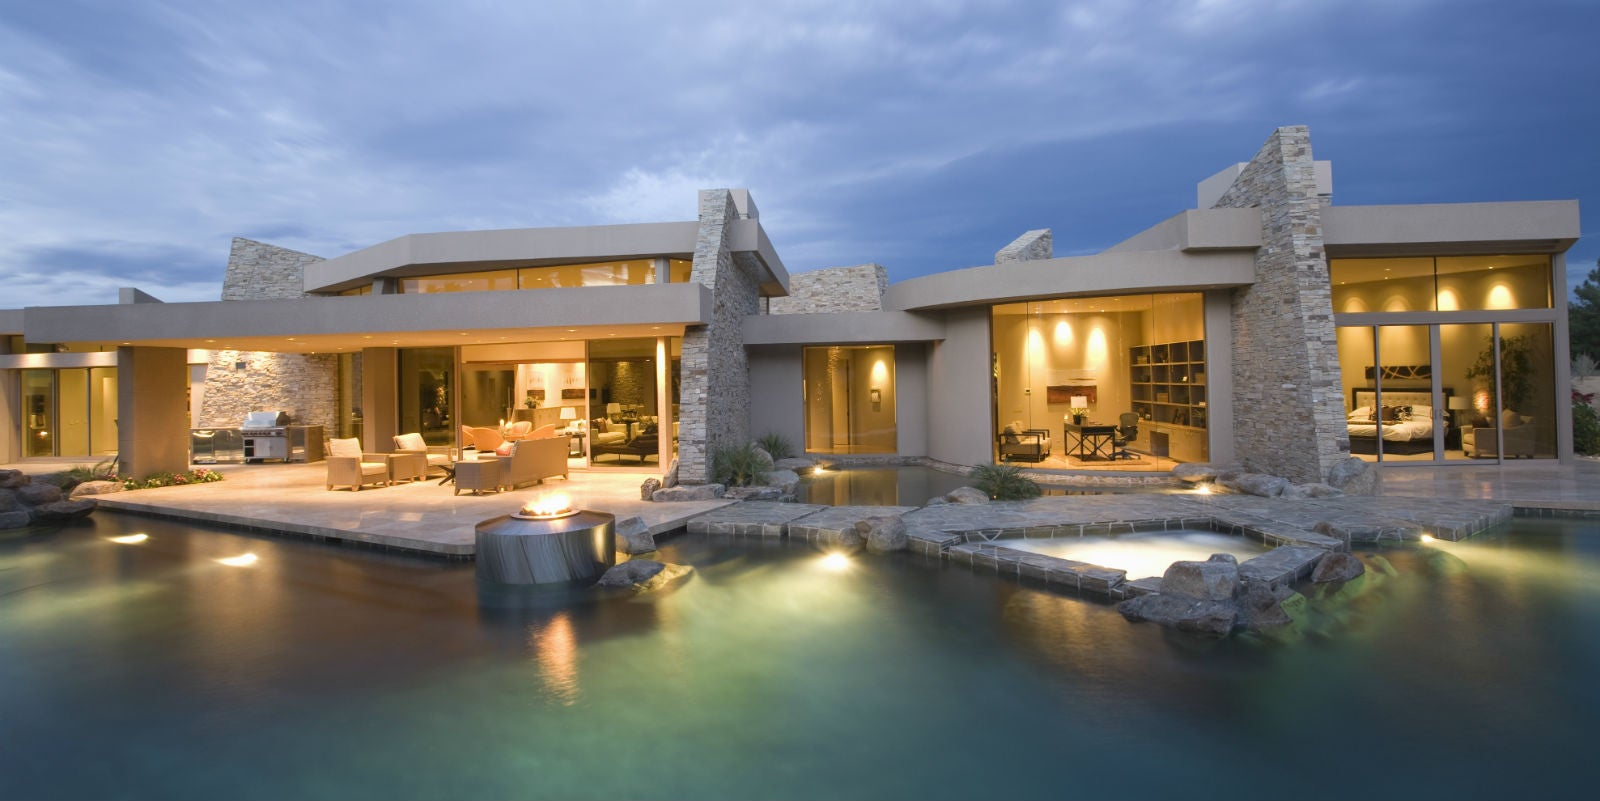 & How to Outfit Your Entire Home With LED Light azcodes.com